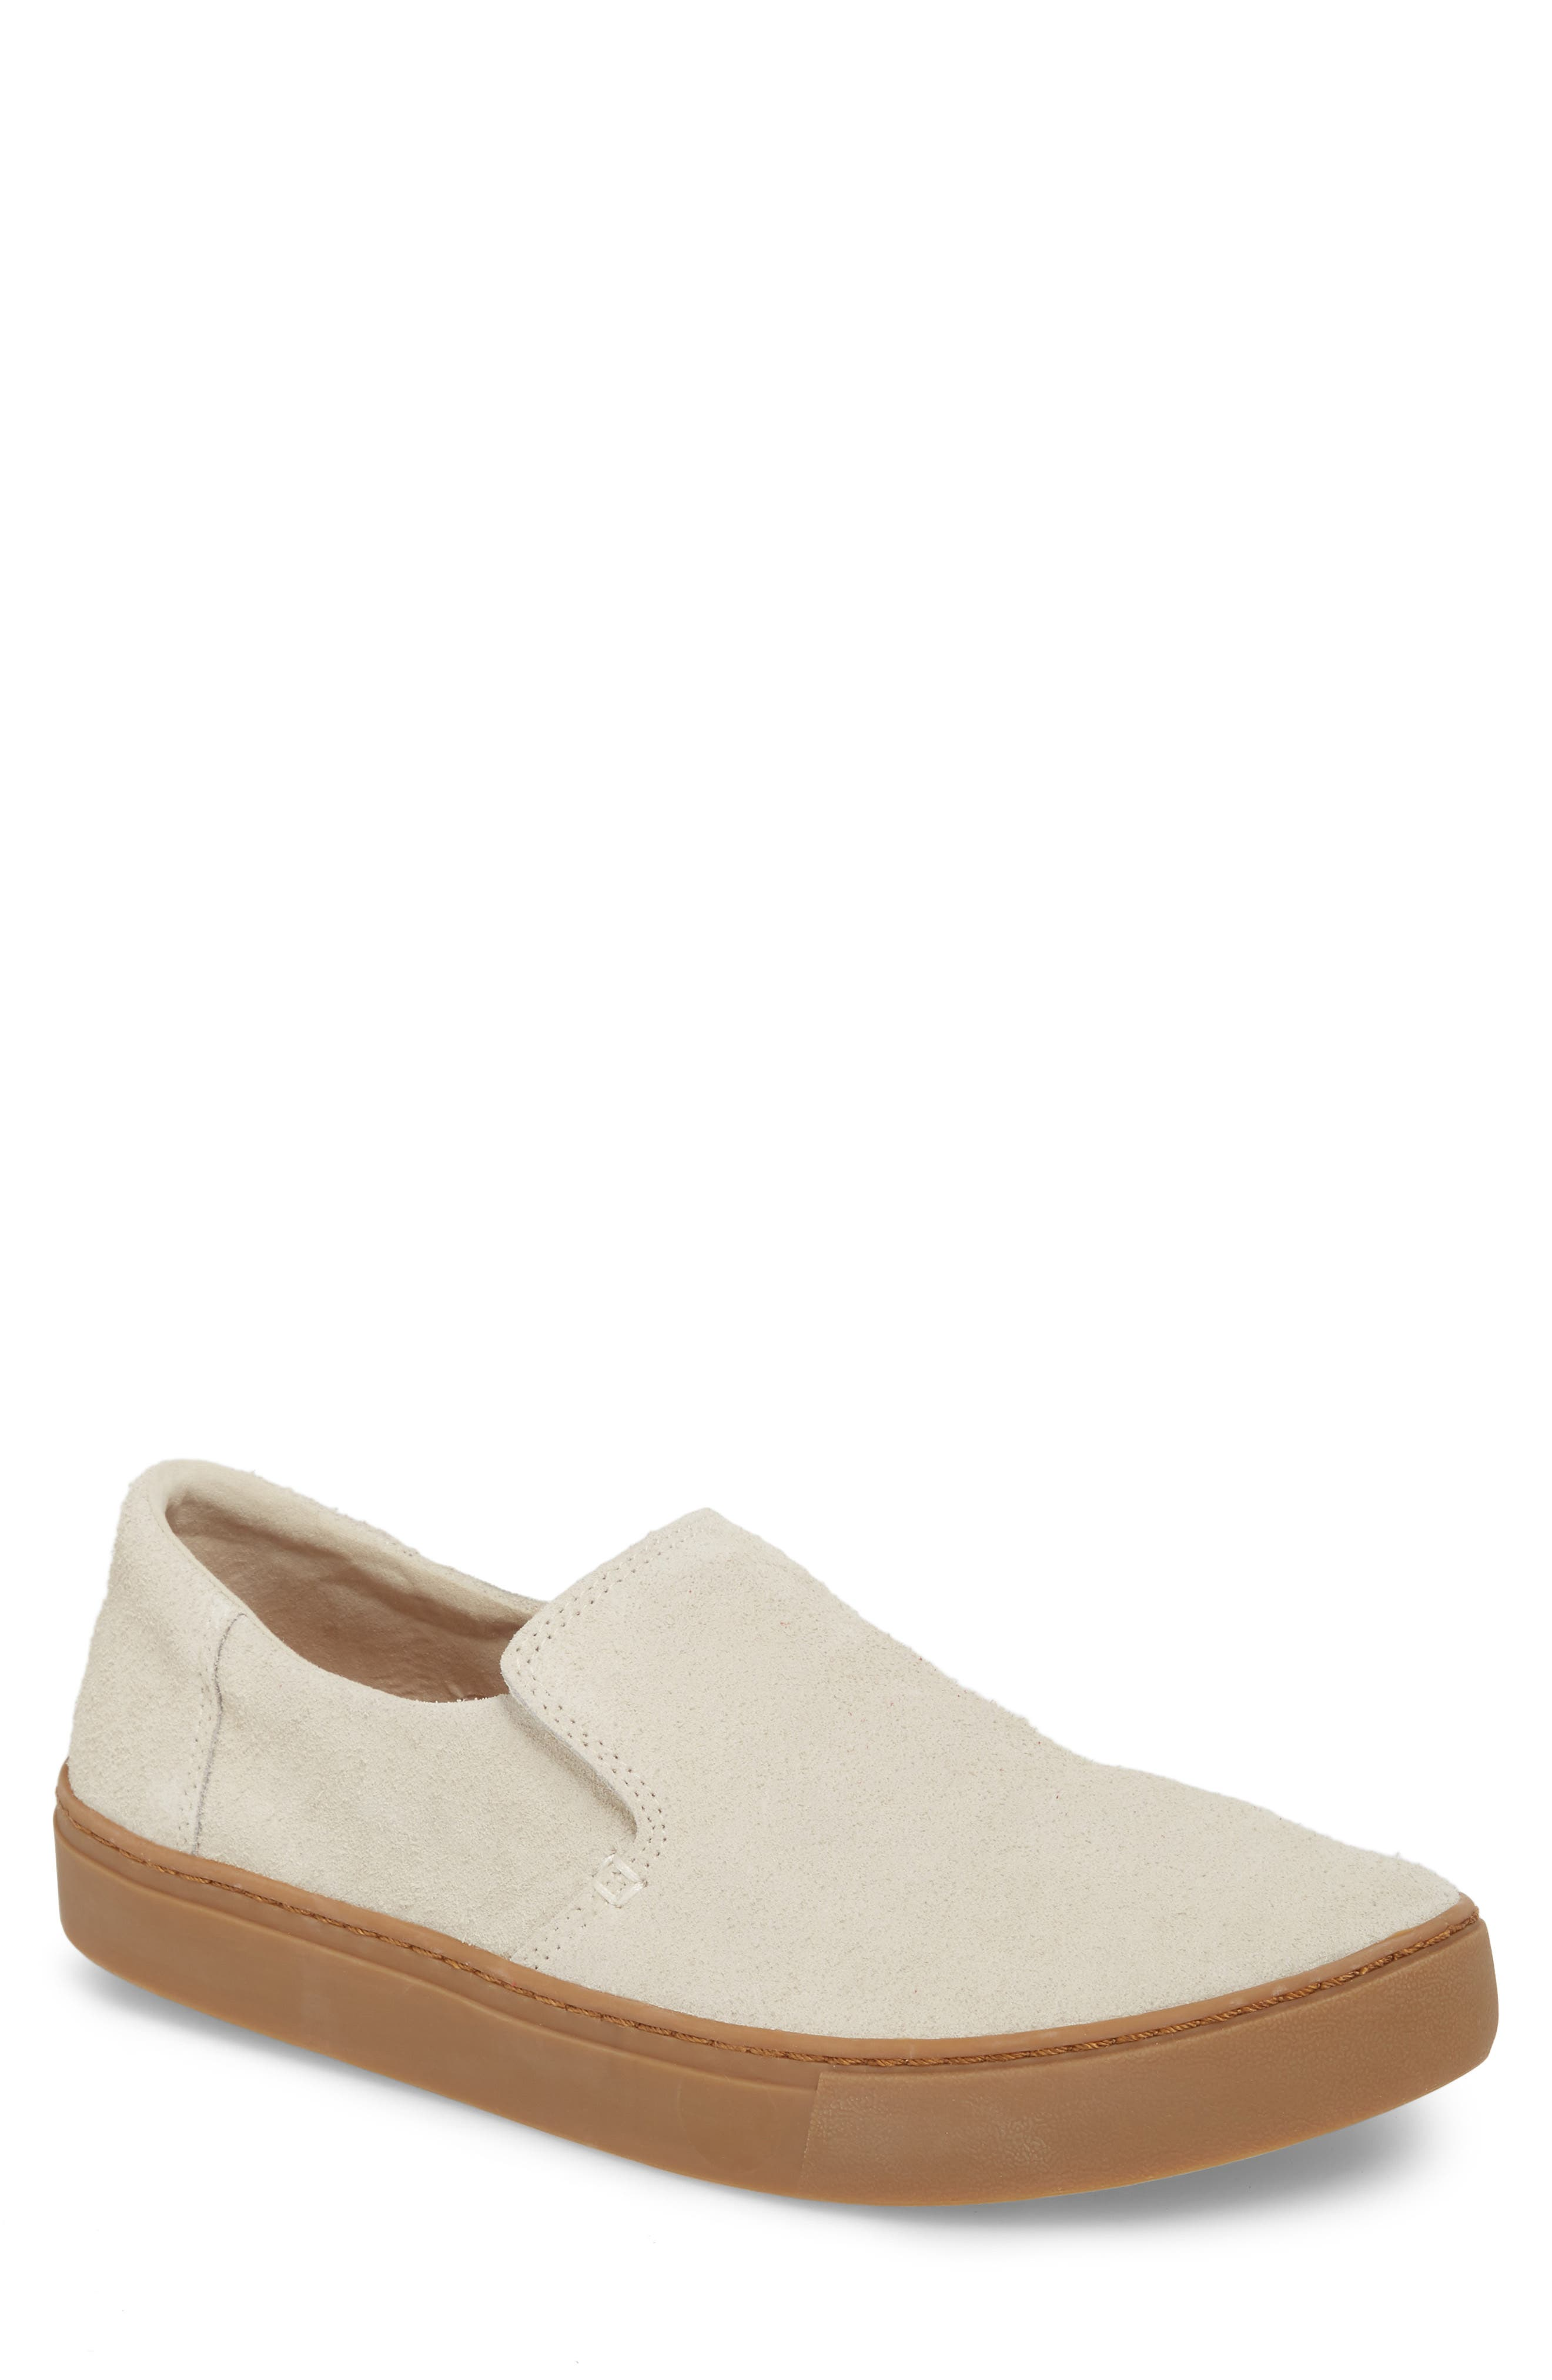 Loma Slip-On Sneaker,                         Main,                         color, Birch Shaggy Suede/ Gum